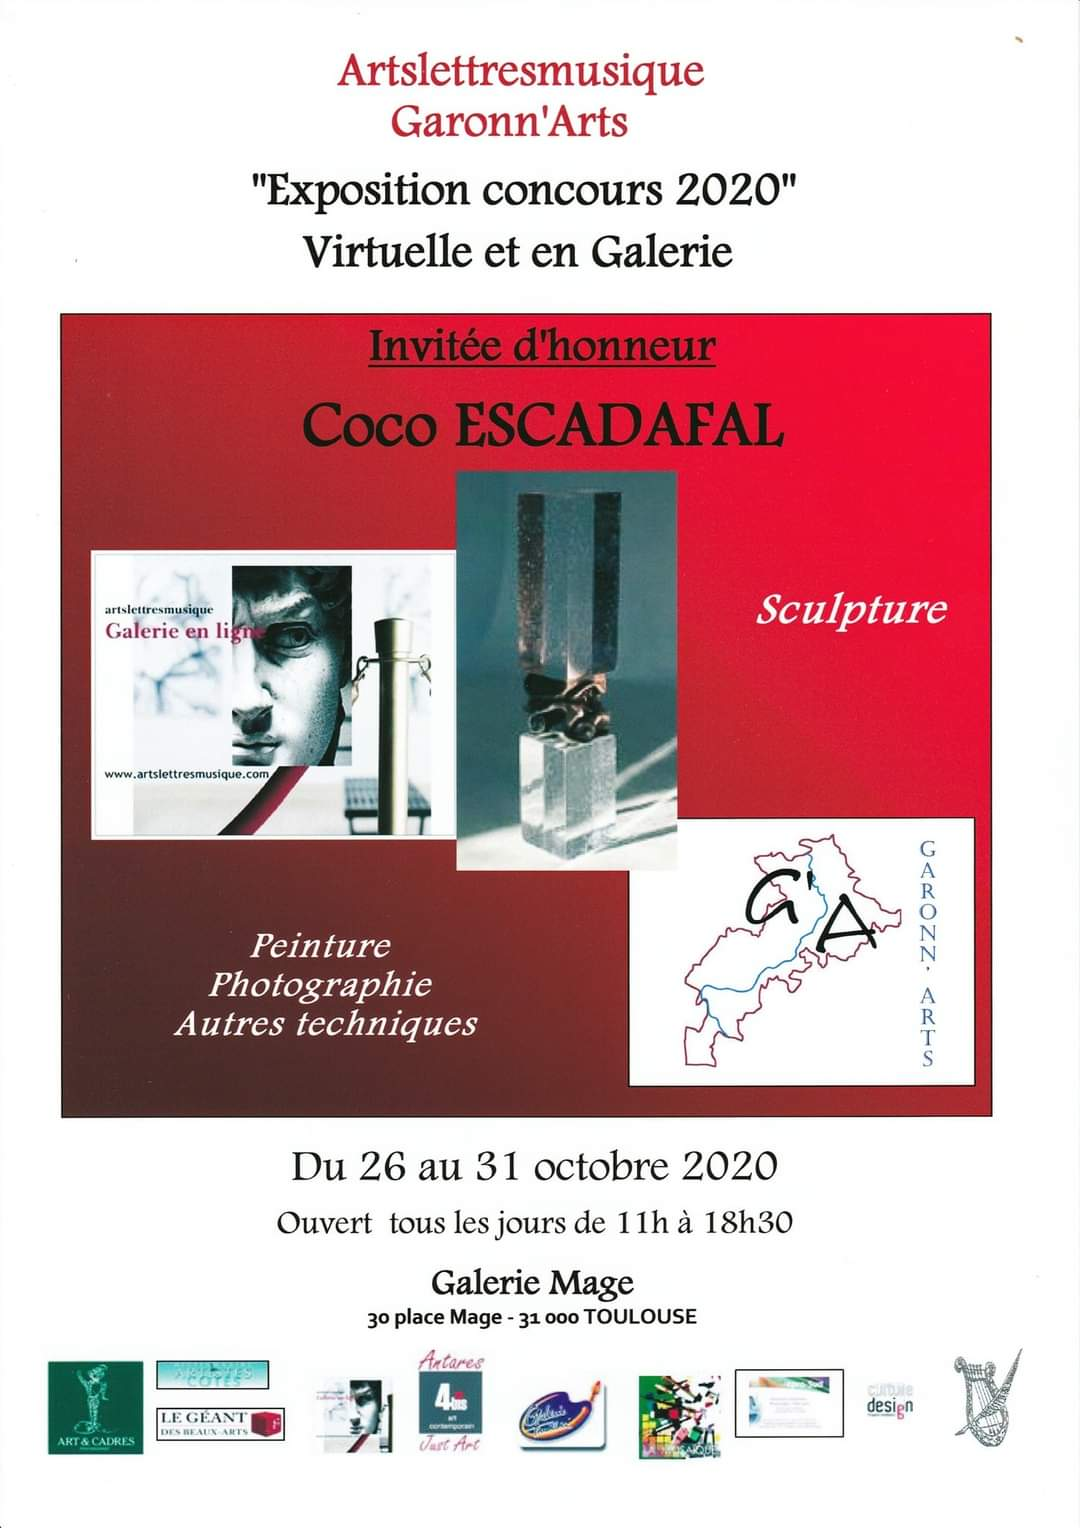 Exposition Concours 2020 @ Galerie Mage